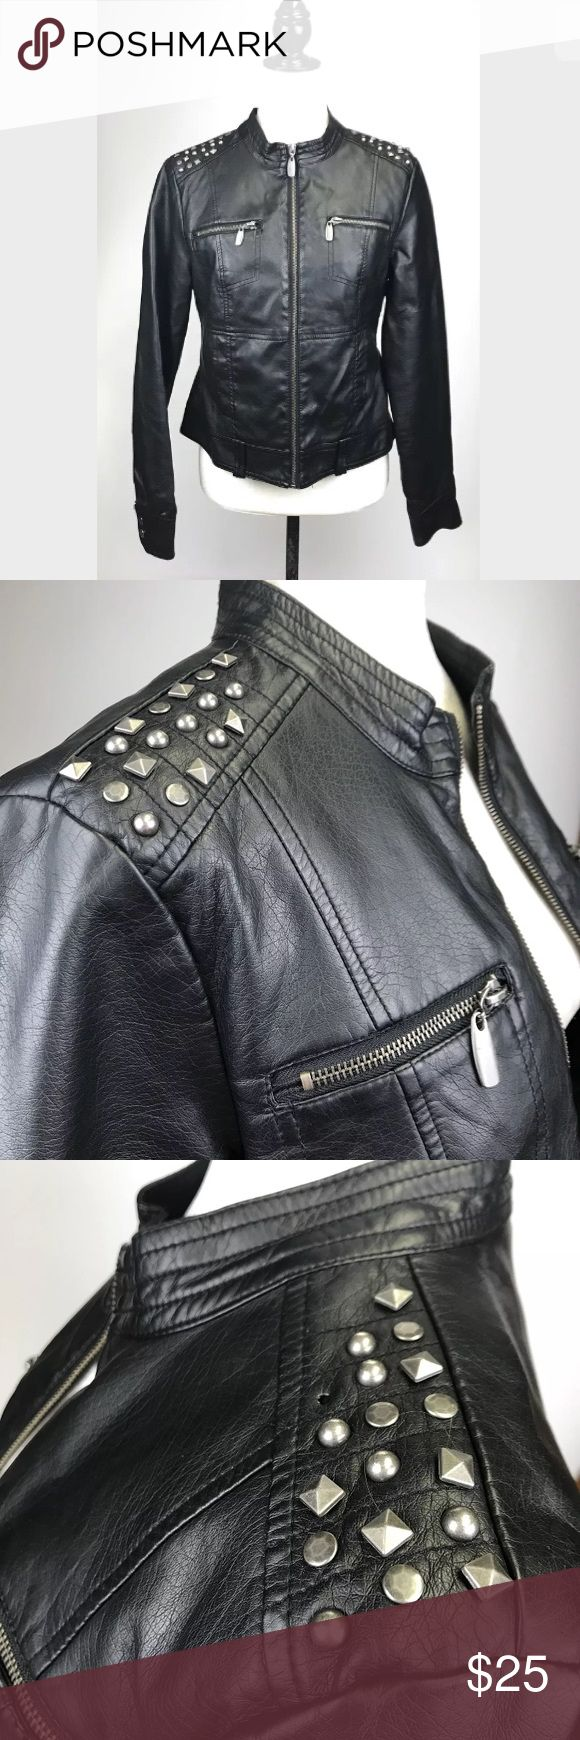 "Vegan Leather Studded Black Moto Jacket Large New Look  Womens Vegan Leather Studded Black Biker Rugged Style Moto Jacket Size Large * Missing one stud on shoulder   Measurements all taken laying flat: armpit to armpit - 19"" sleeve length - 25"" length - 22"" Jackets & Coats"